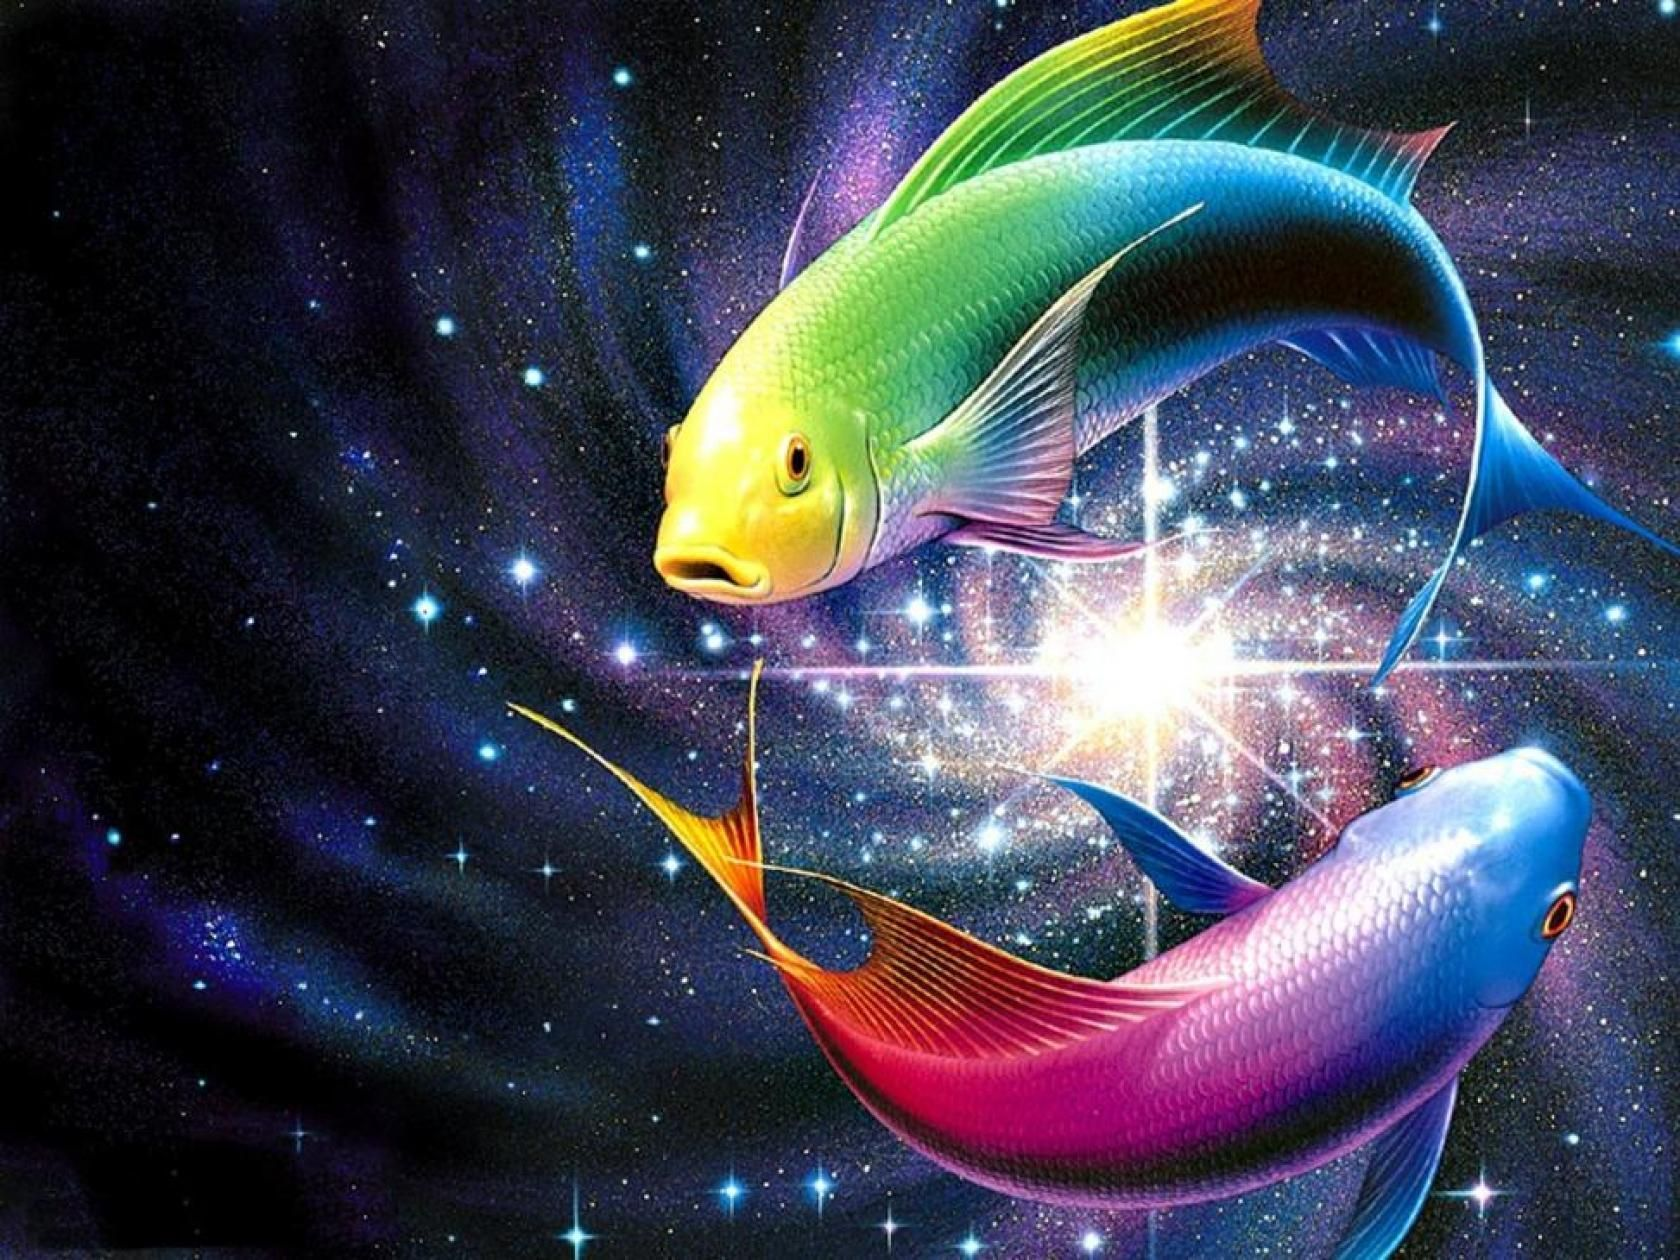 Rainbow Fish Wallpapers HD | ¡Papel pintado! El | Fondo de pantalla de pescado, arco iris